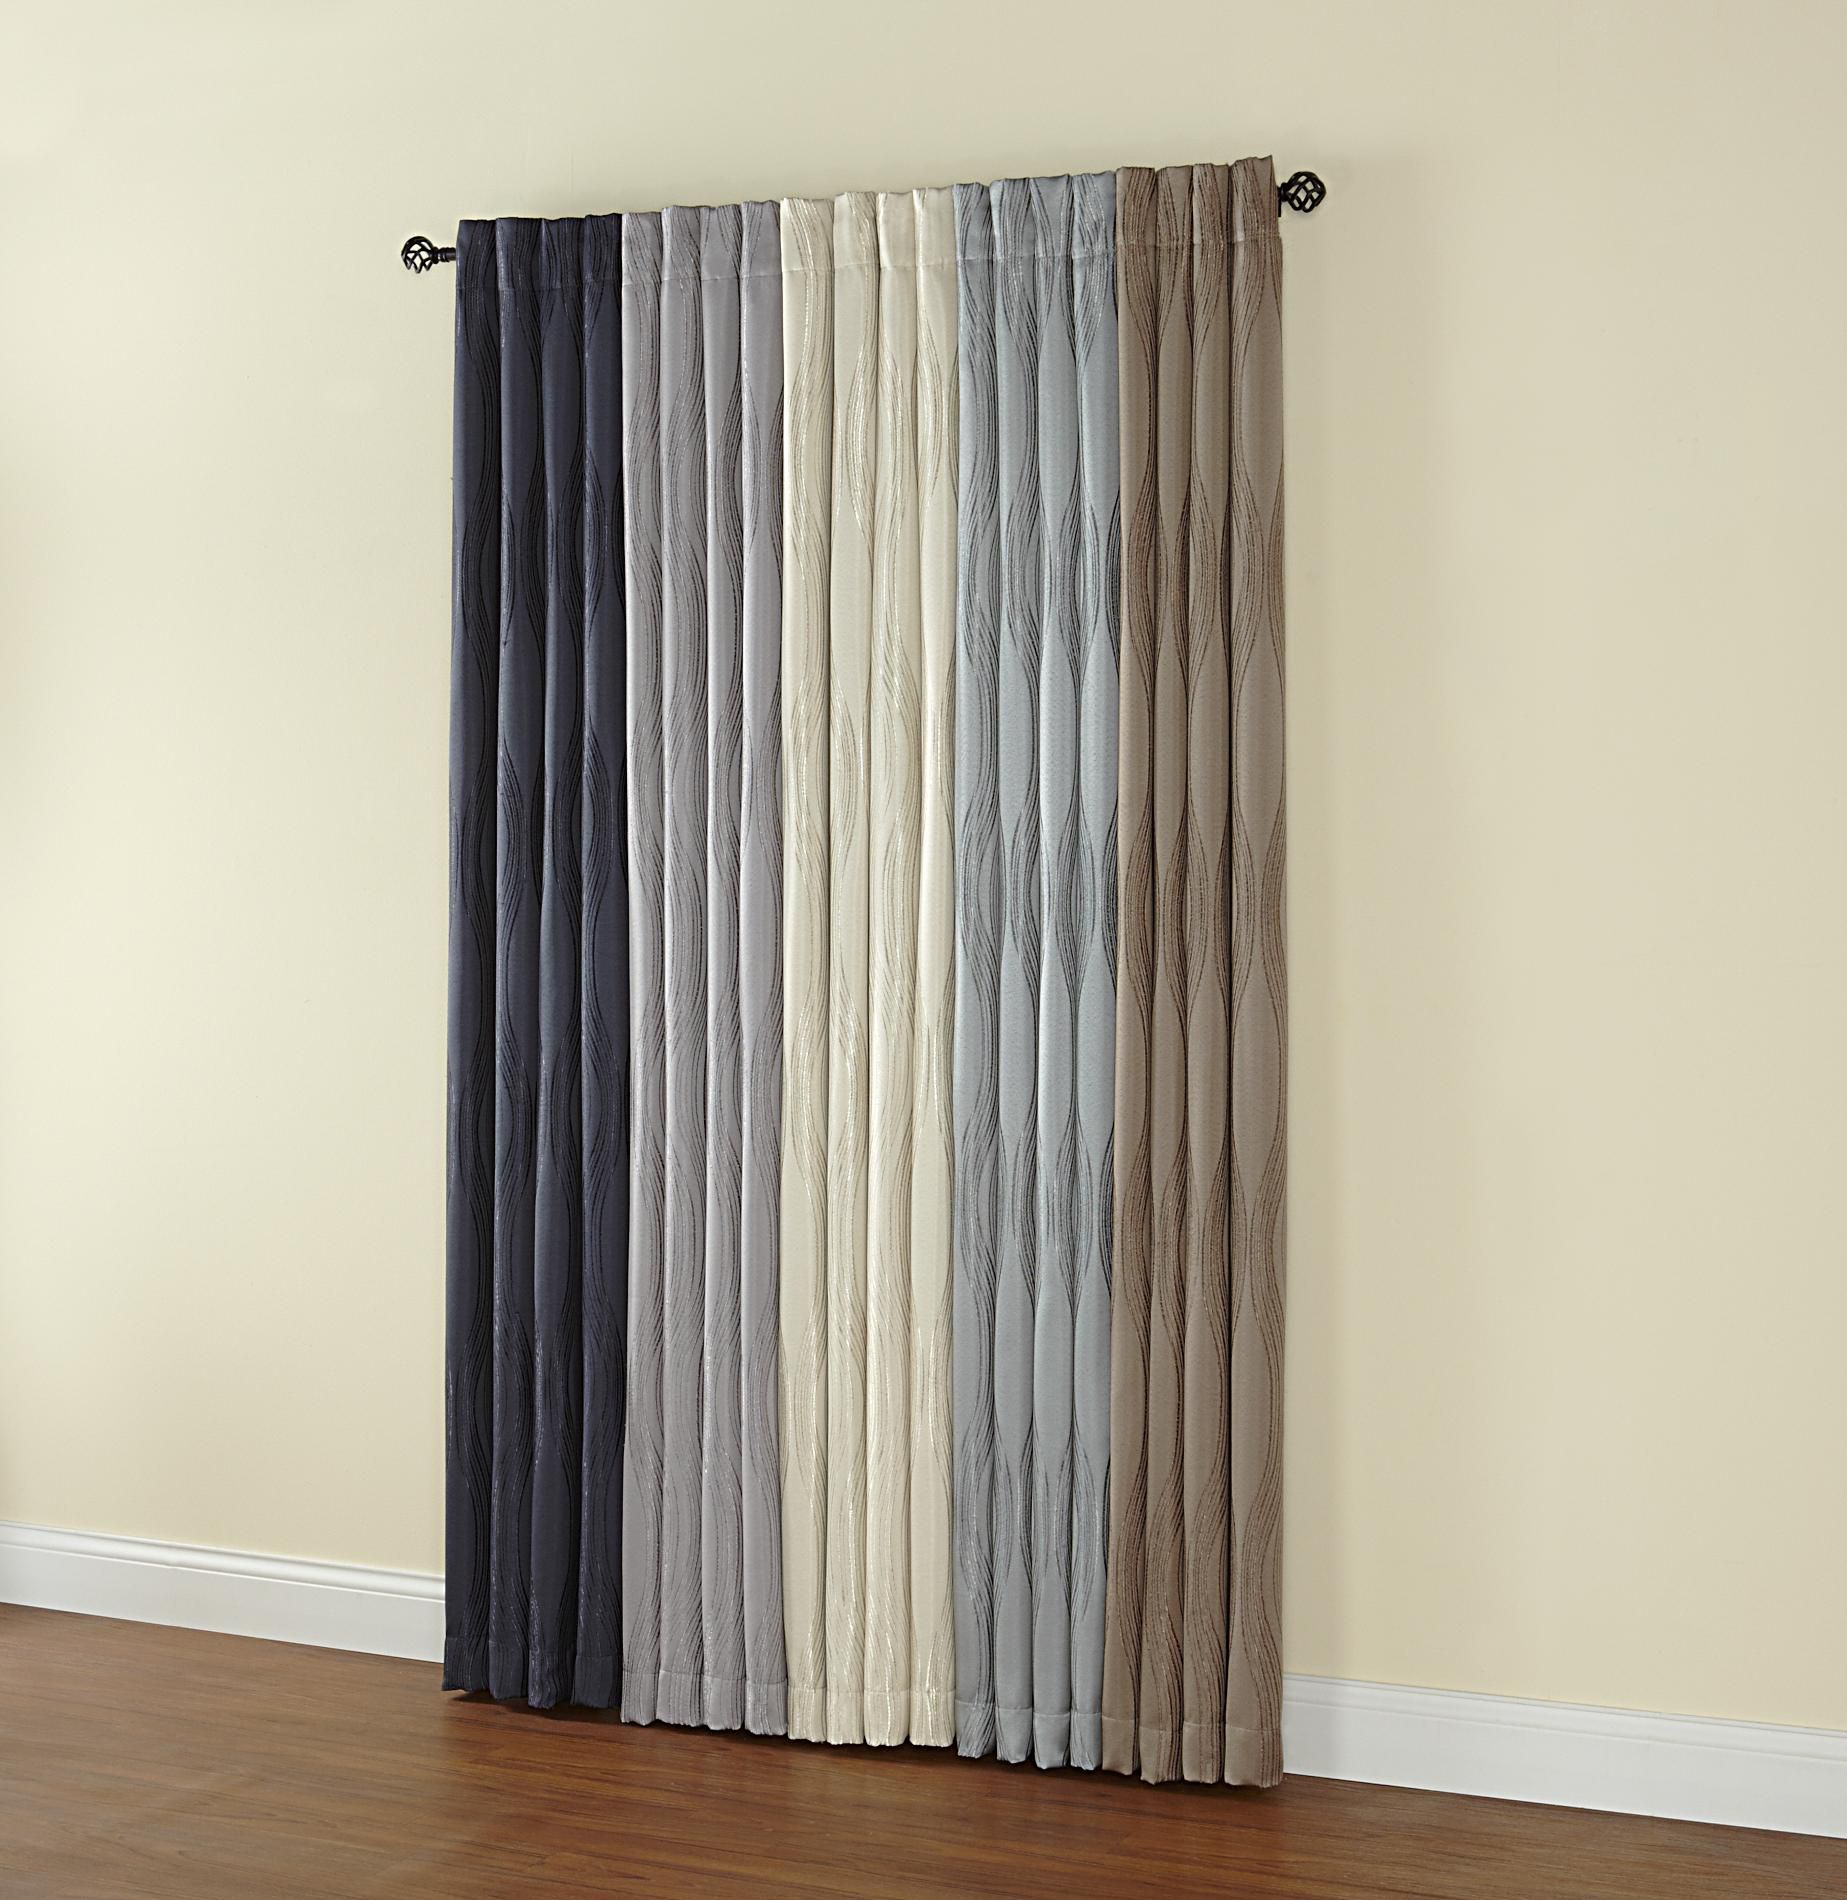 Osbourne Grommet Curtain Panel - Blackout